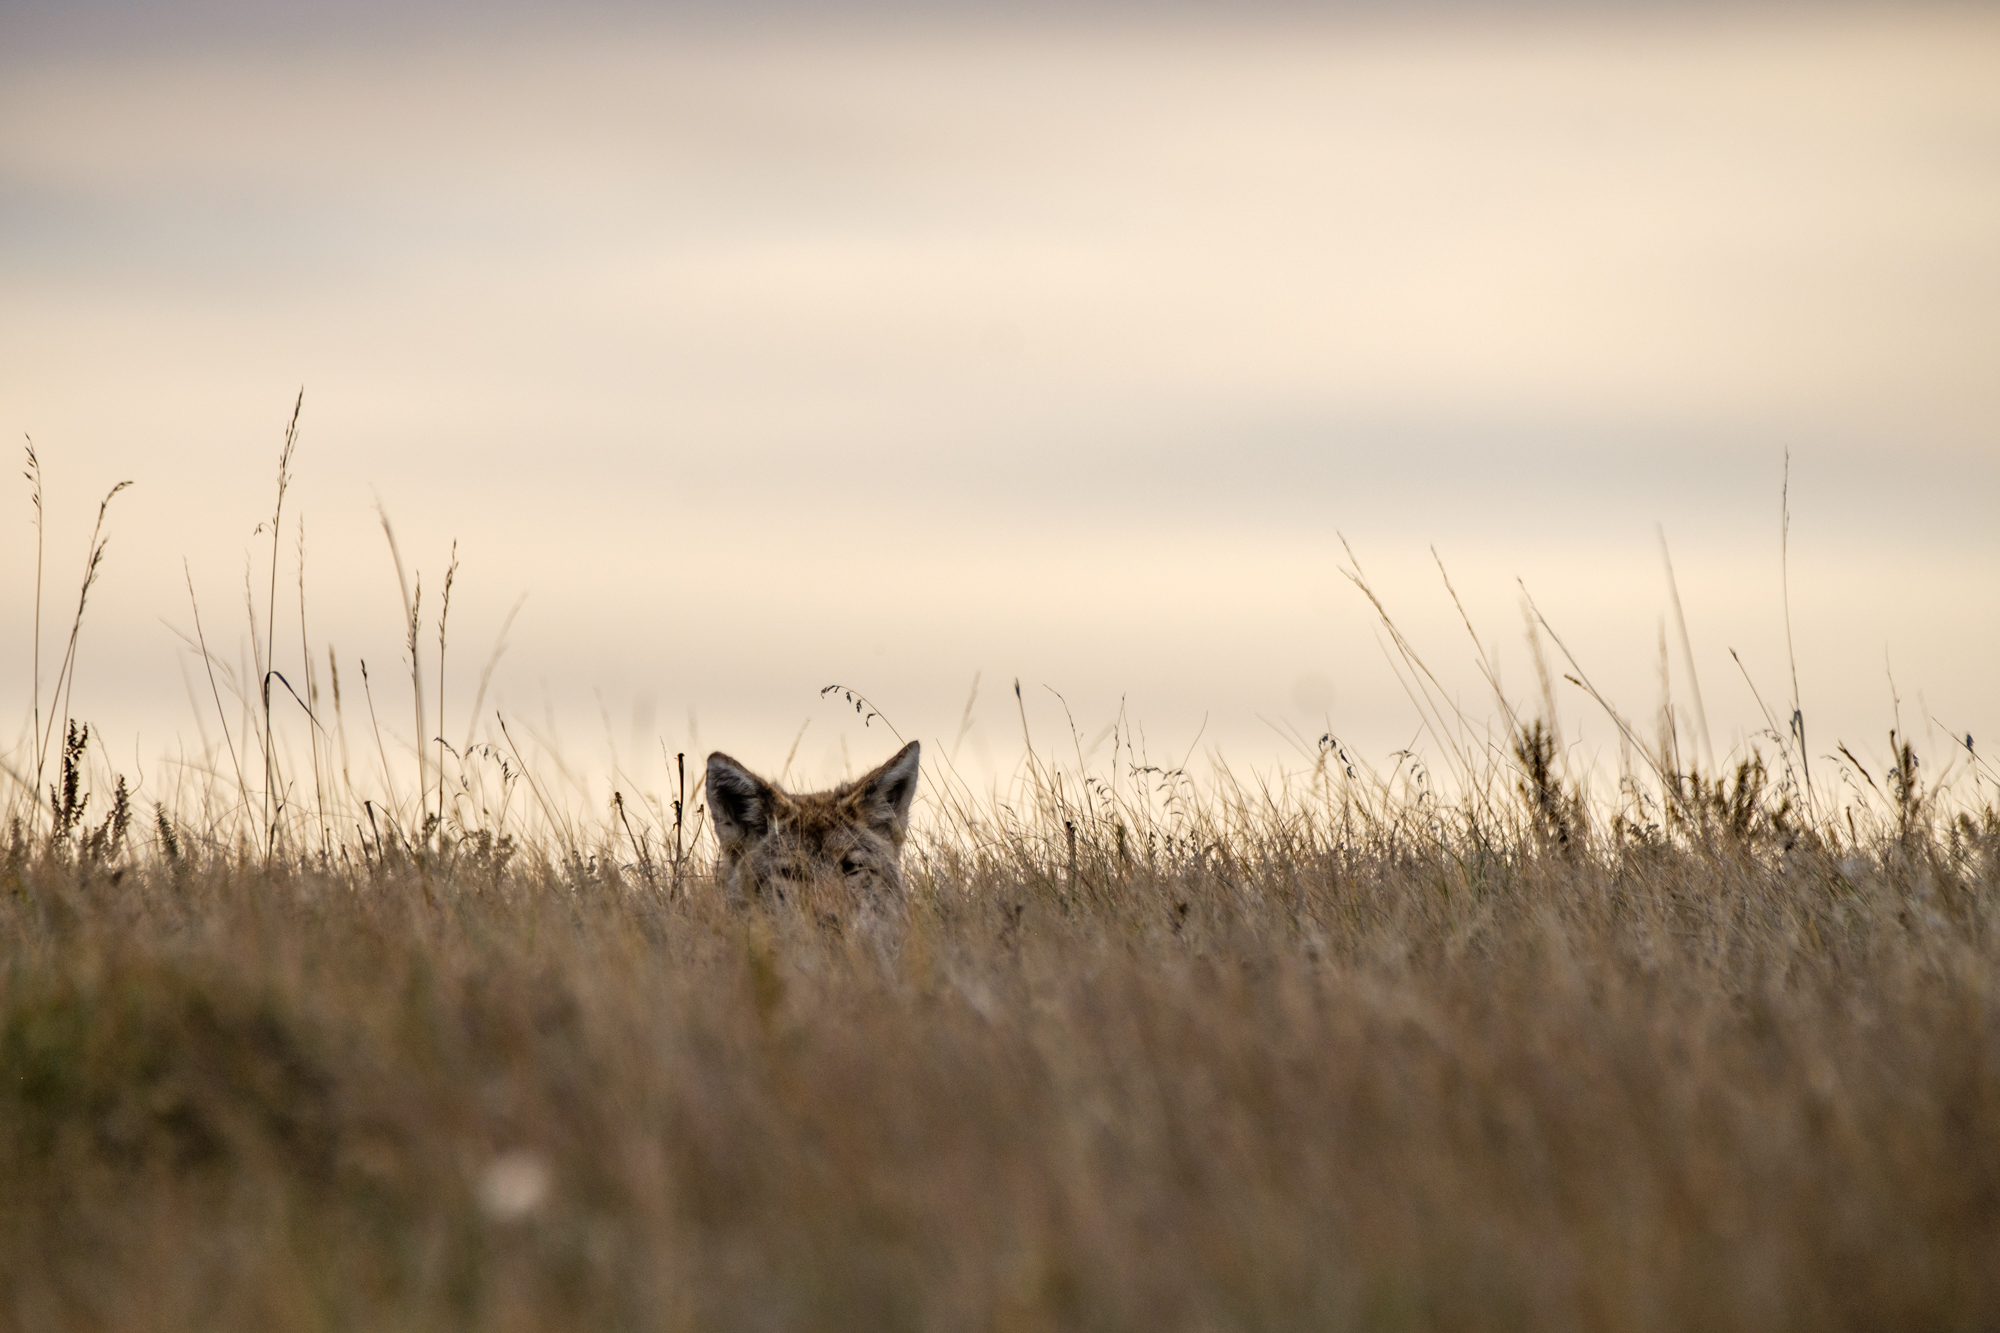 Coyote at Theodore Roosevelt National Park in North Dakota.